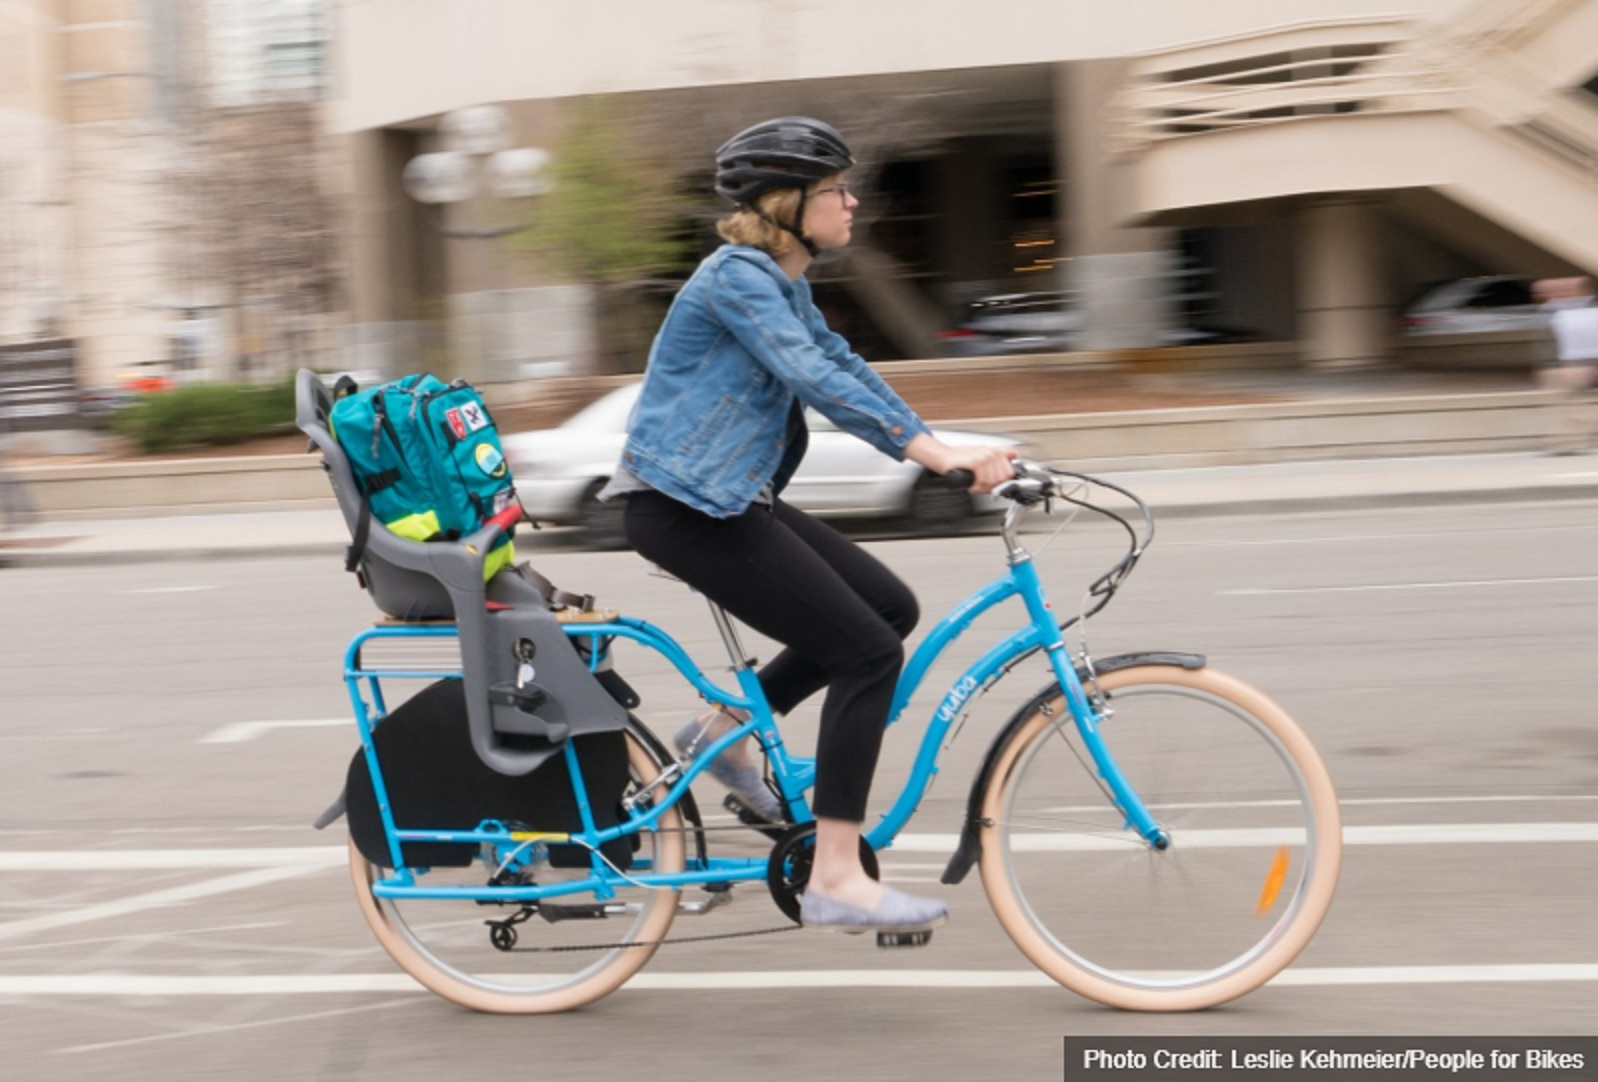 ELECTRIC BIKES ARE HAVING A MOMENT. HERE'S WHY.